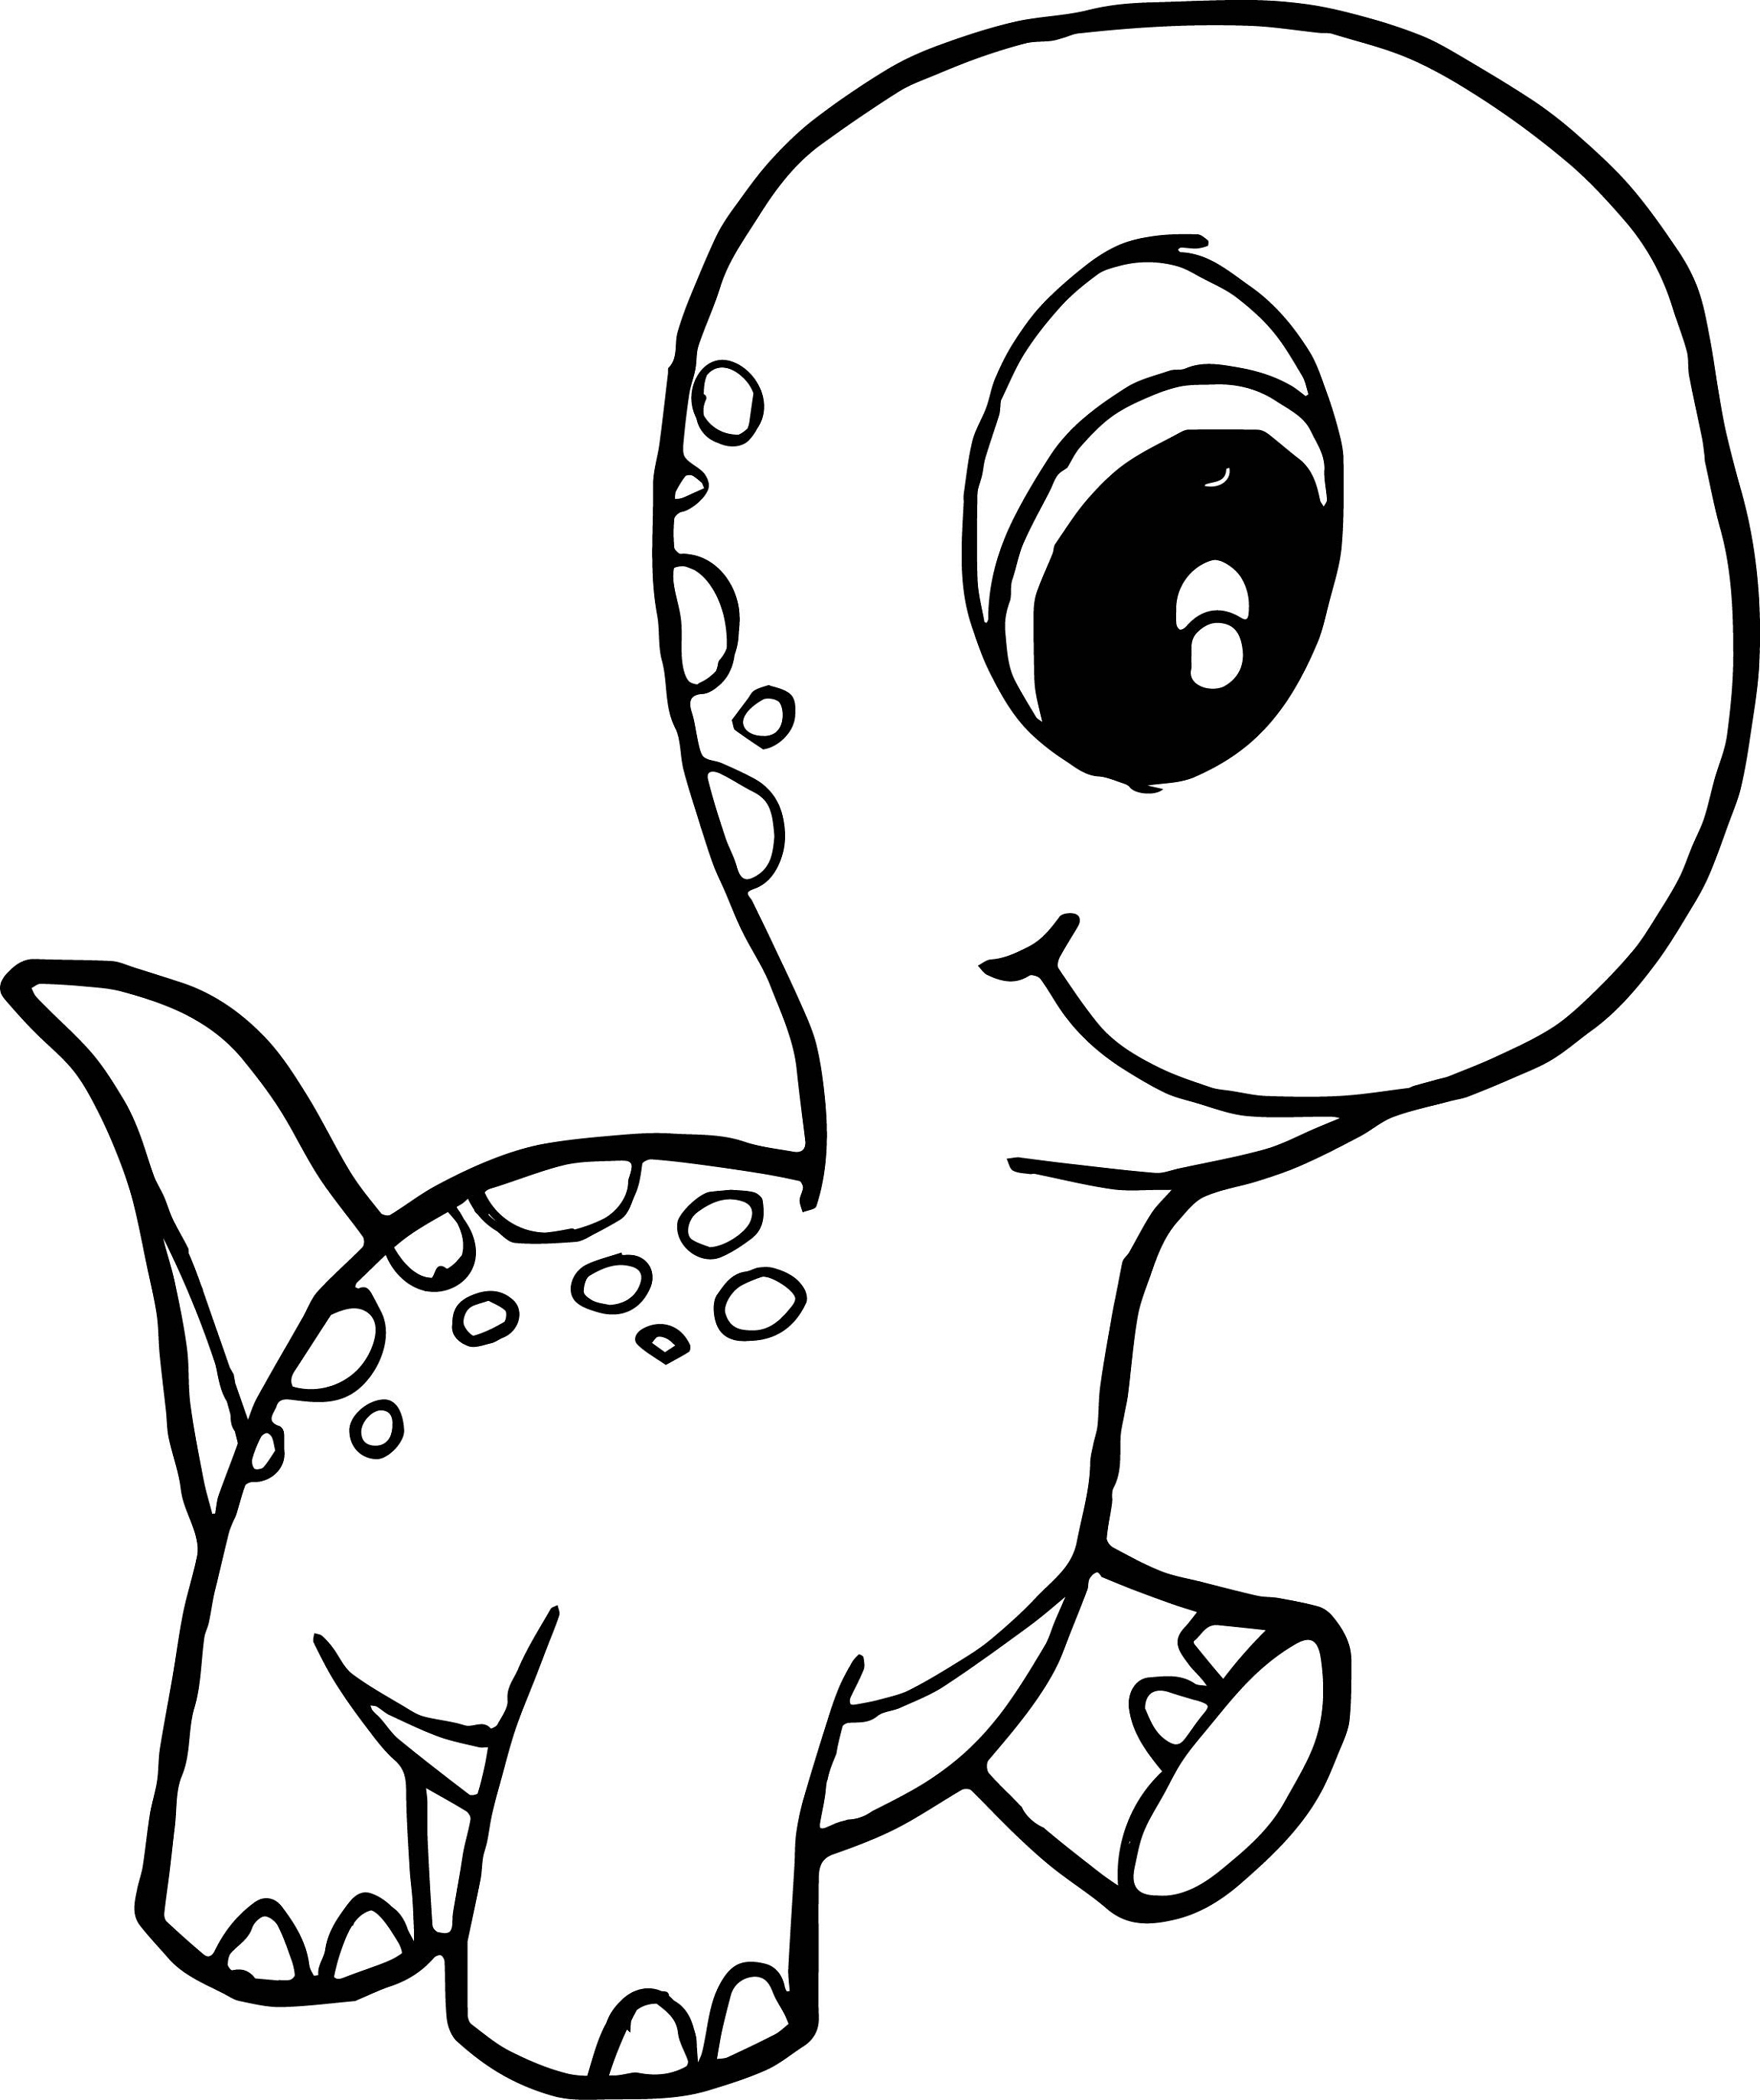 dinosaur pictures to colour in free printable dinosaur coloring pages for kids in pictures dinosaur to colour